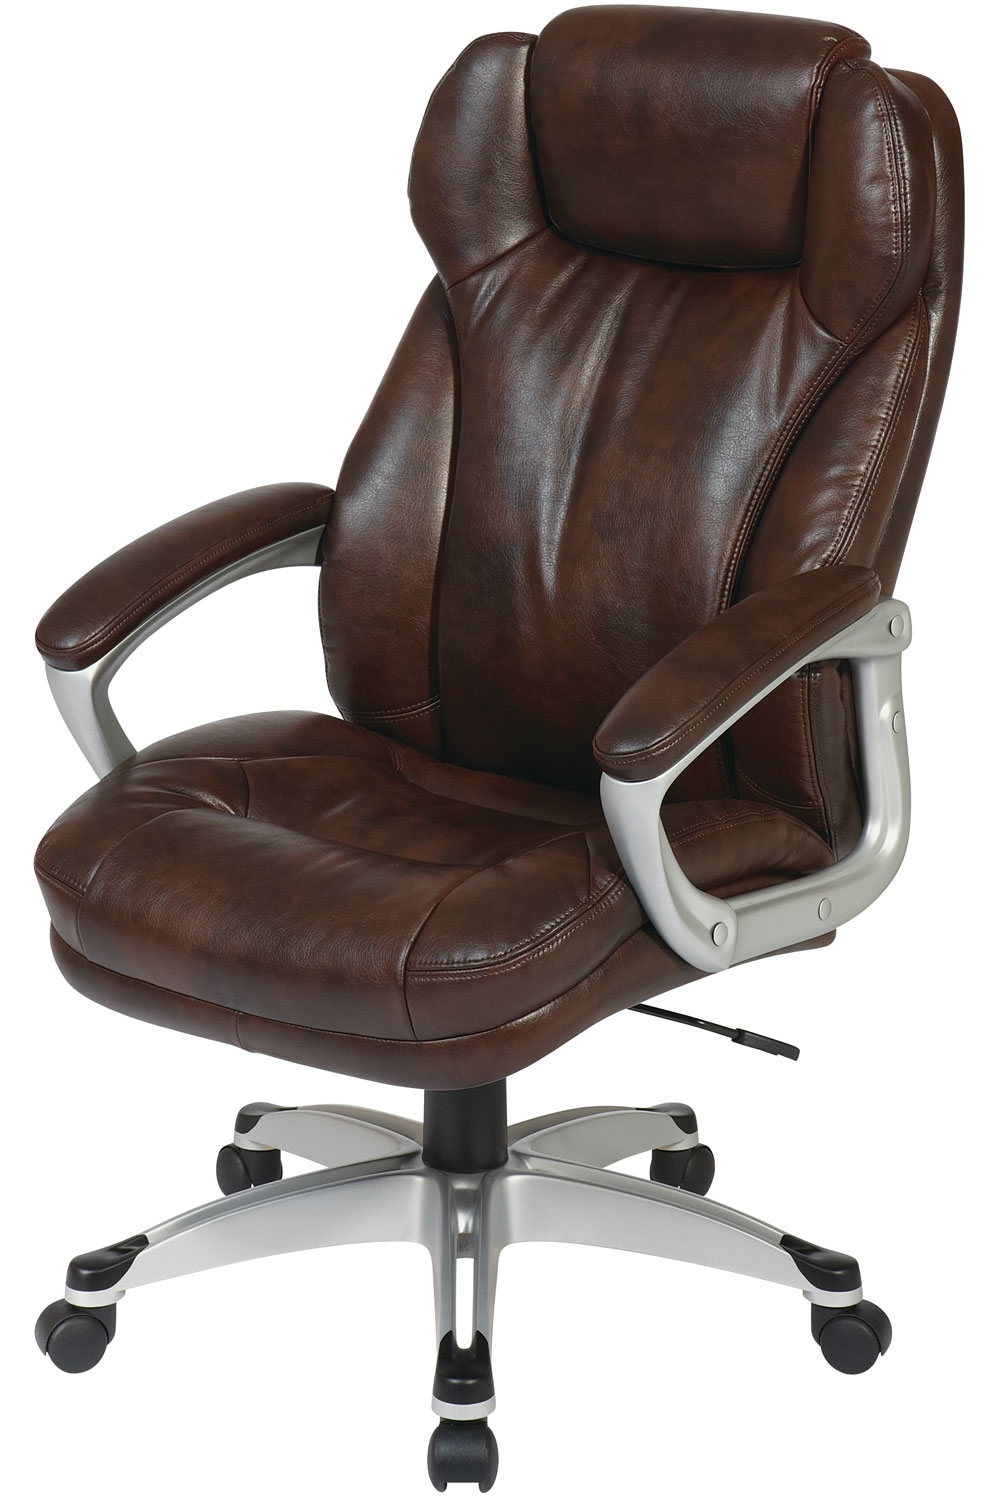 Famous Executive Office Chairs With Headrest With Ech85801 Ec1 Office Star – Executive Cocoa Eco Leather Chair With (View 7 of 20)